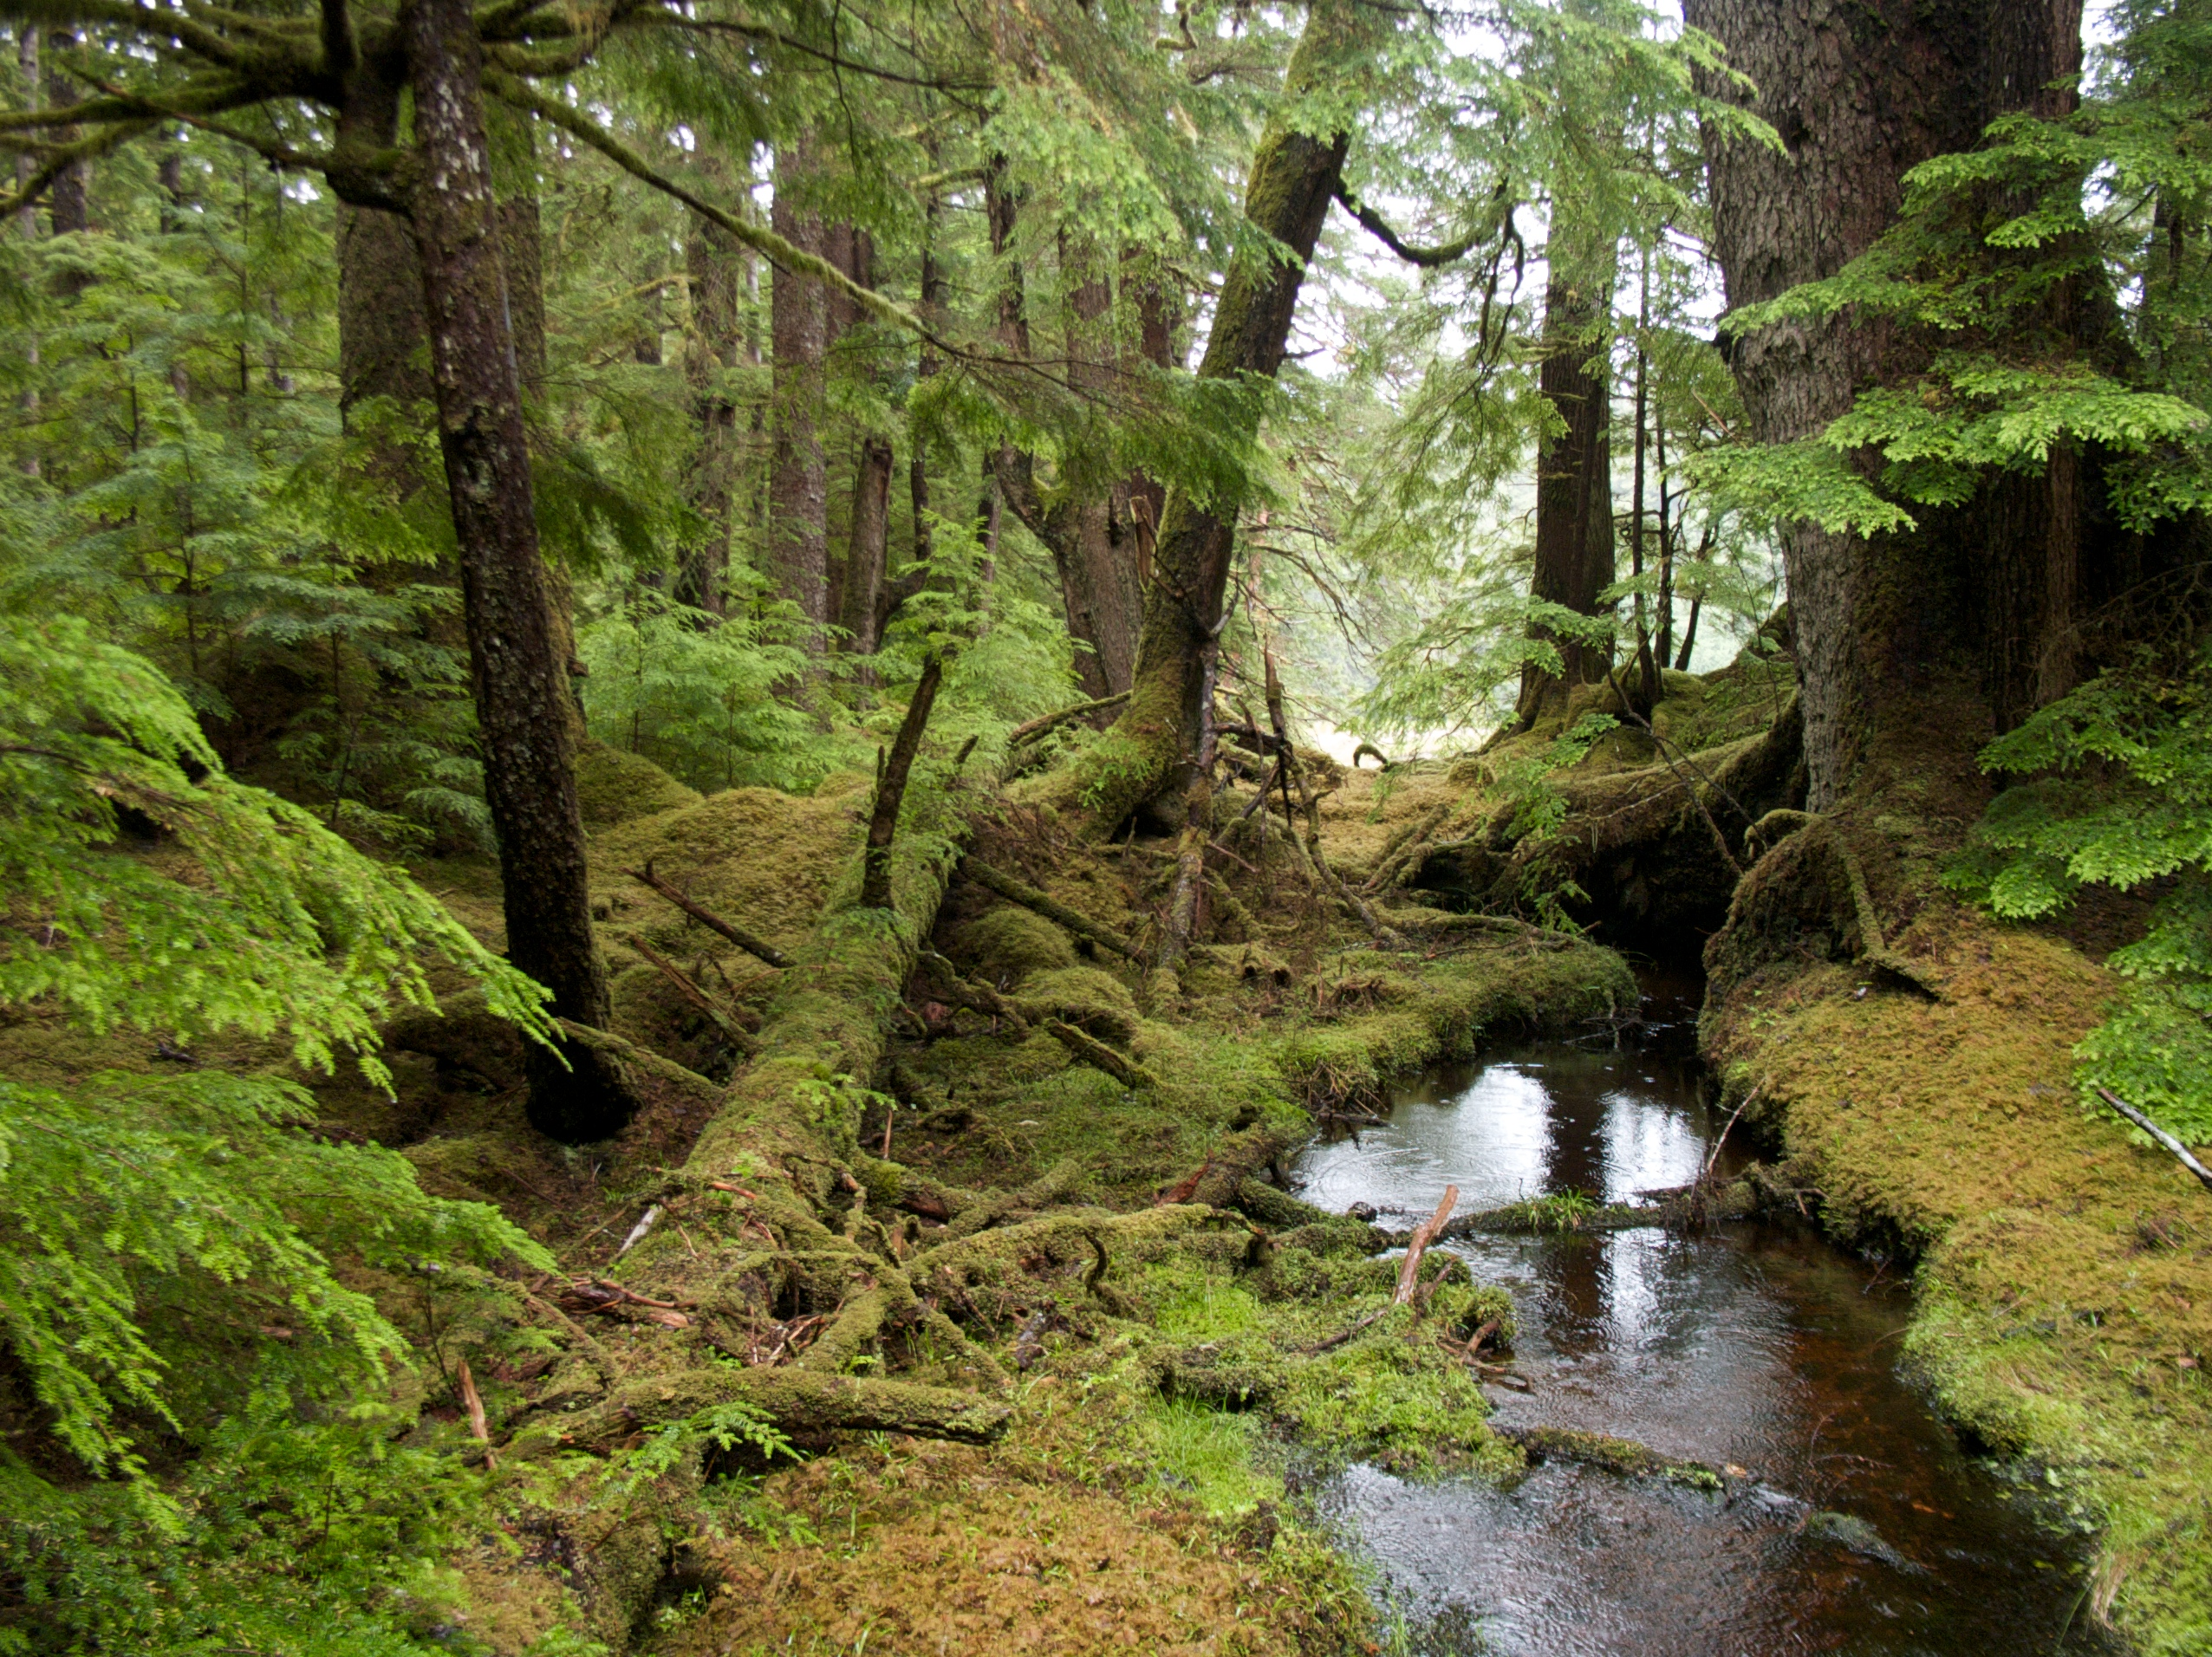 The Rain Forests of Home: Profile Of A North American Bioregion